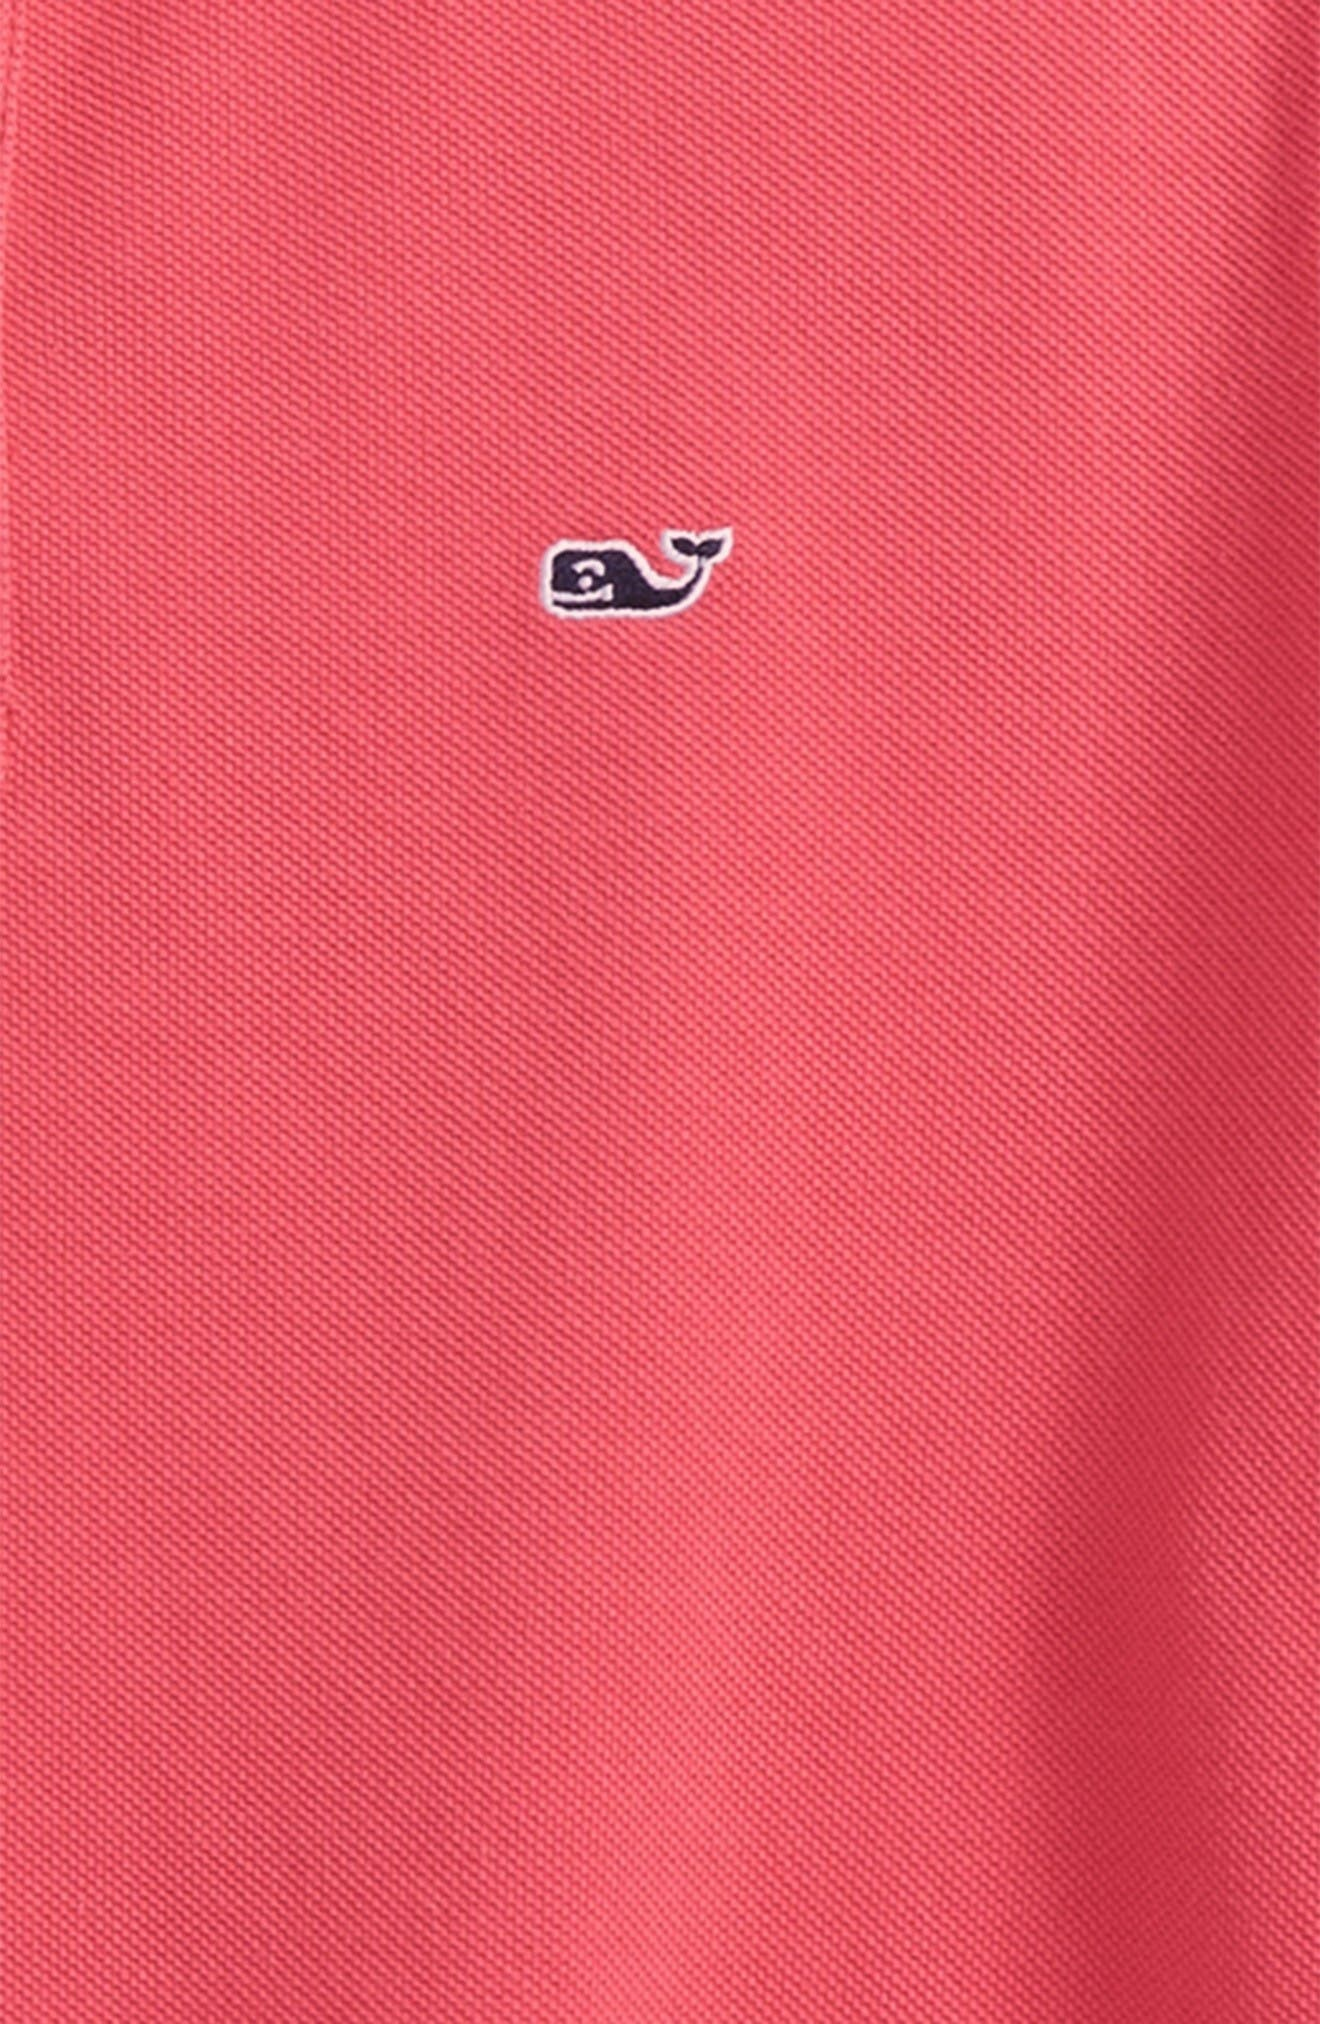 Alternate Image 2  - vineyard vines Classic Piqué Cotton Polo (Toddler Boys, Little Boys & Big Boys)